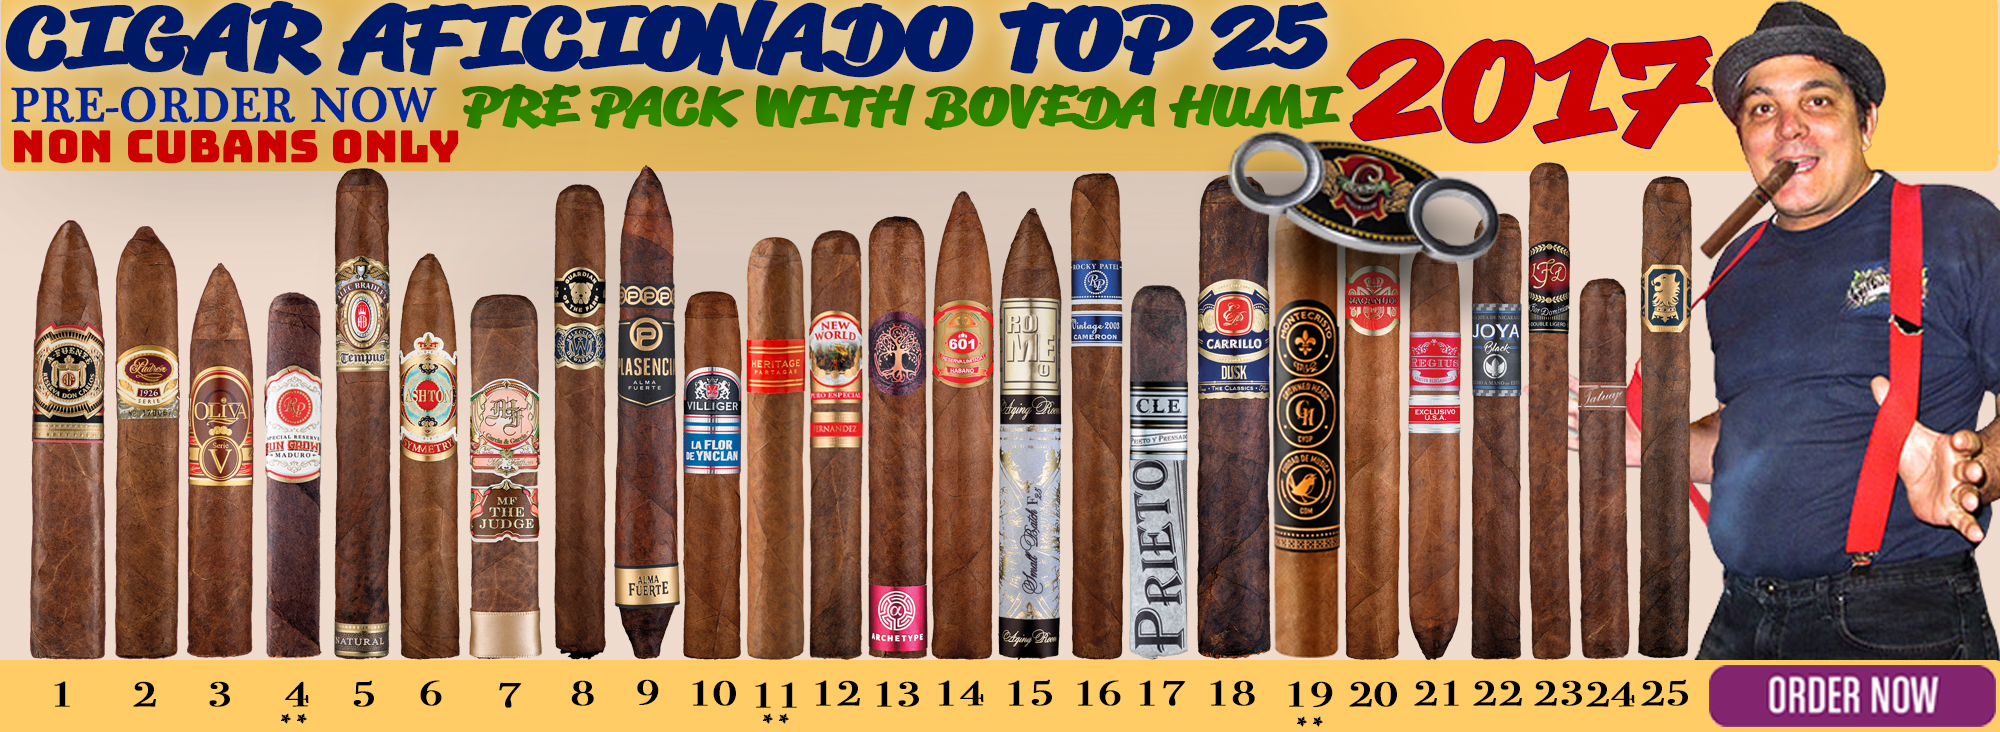 2017 Cigar Aficionado Top 25